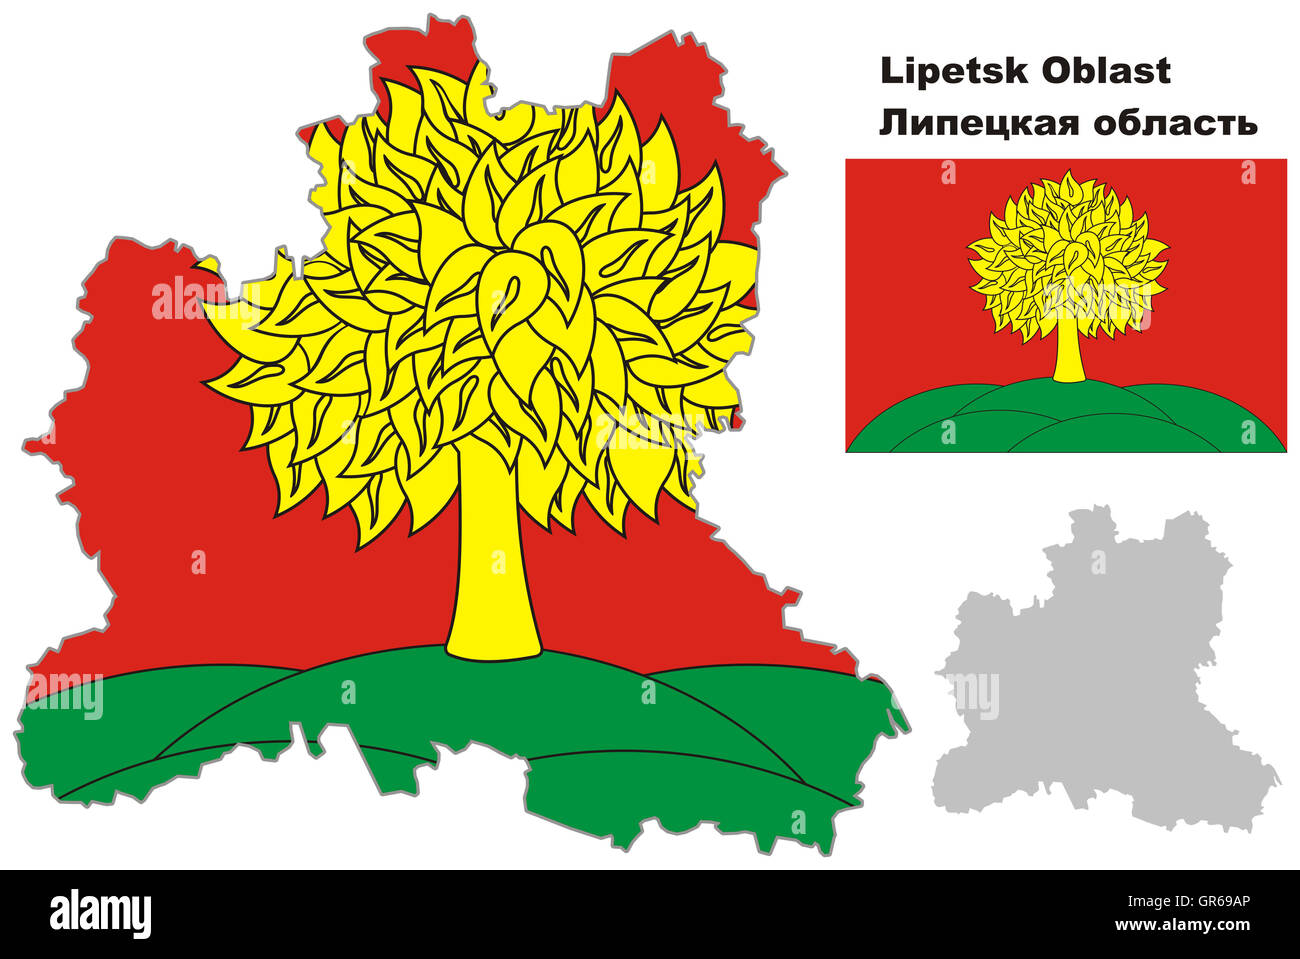 Outline map of Lipetsk Oblast with flag Regions of Russia Vector